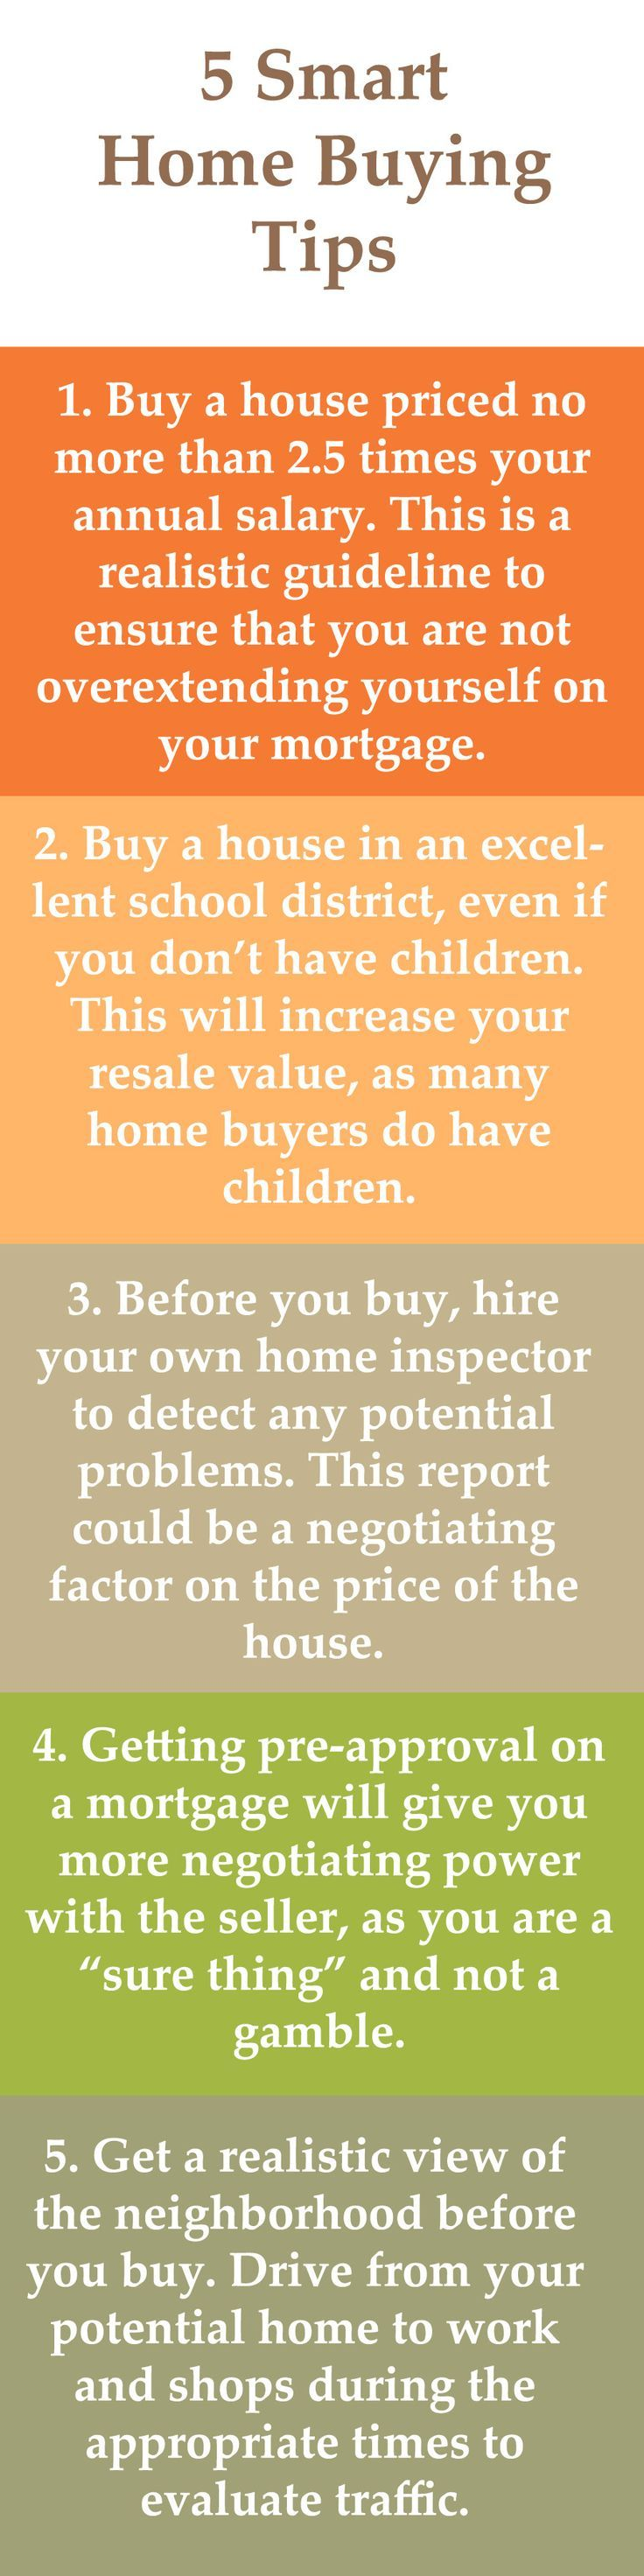 5 Smart Home Buying Tips Home Buying Tips Home Buying Real Estate Tips